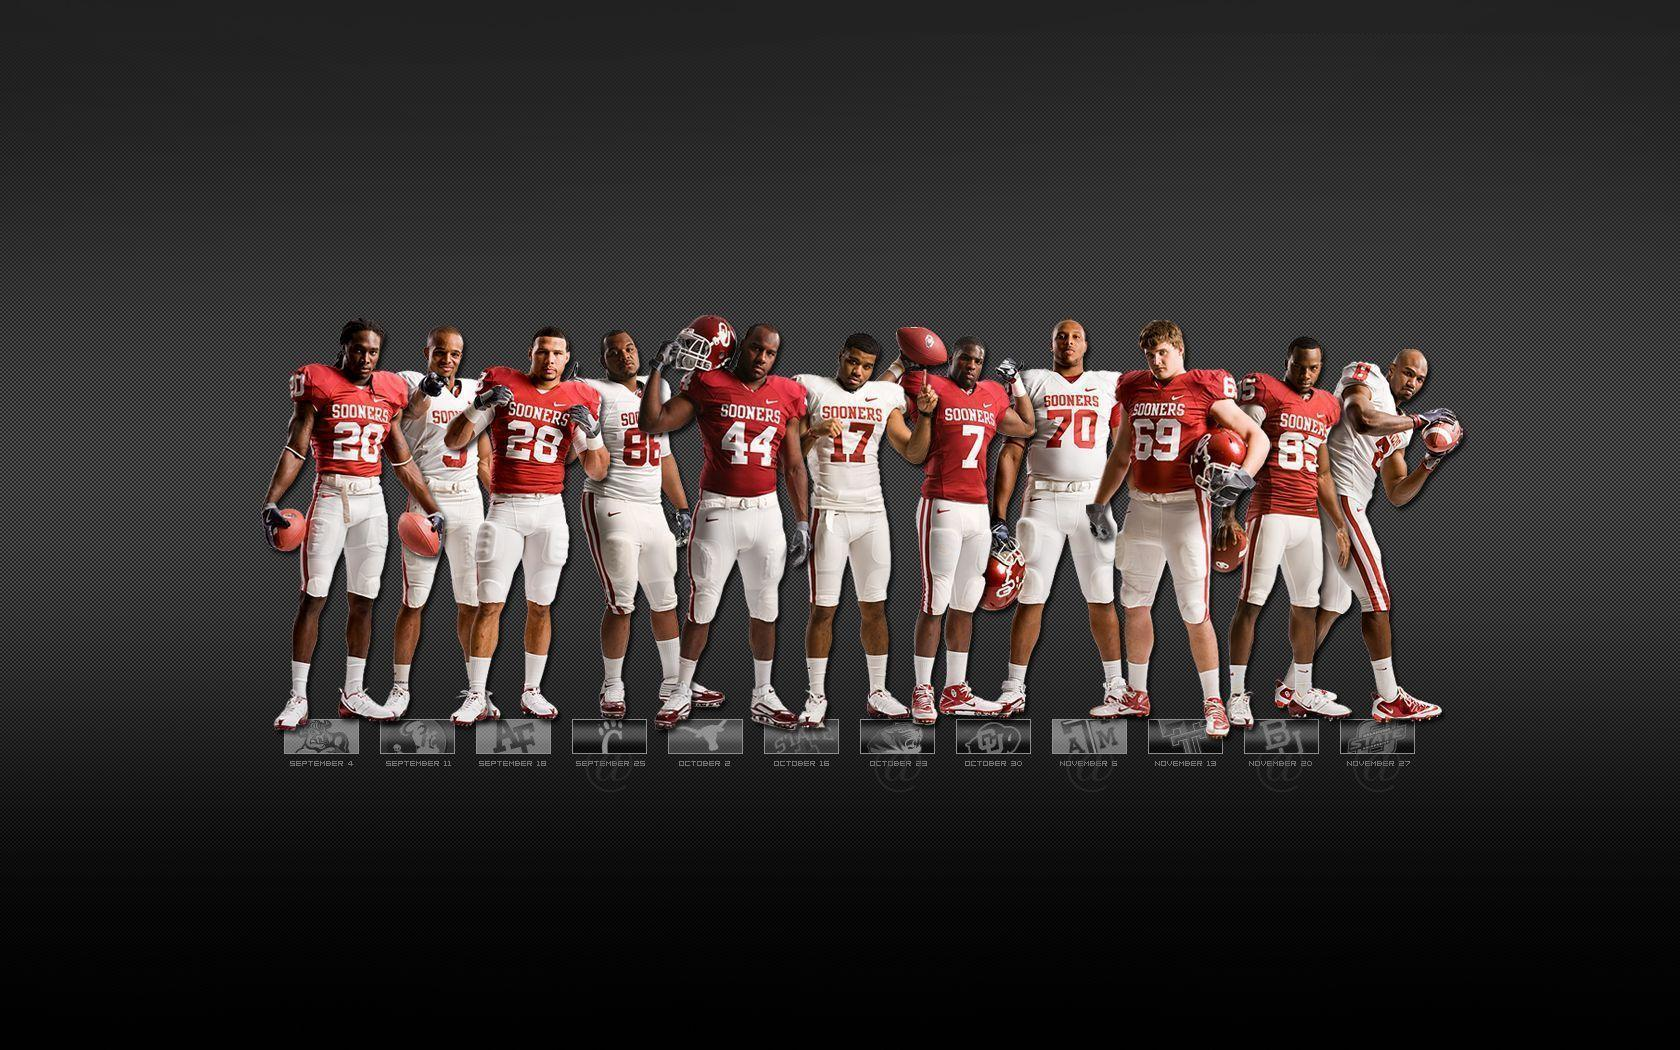 ou sooners wallpaper for laptop - photo #29